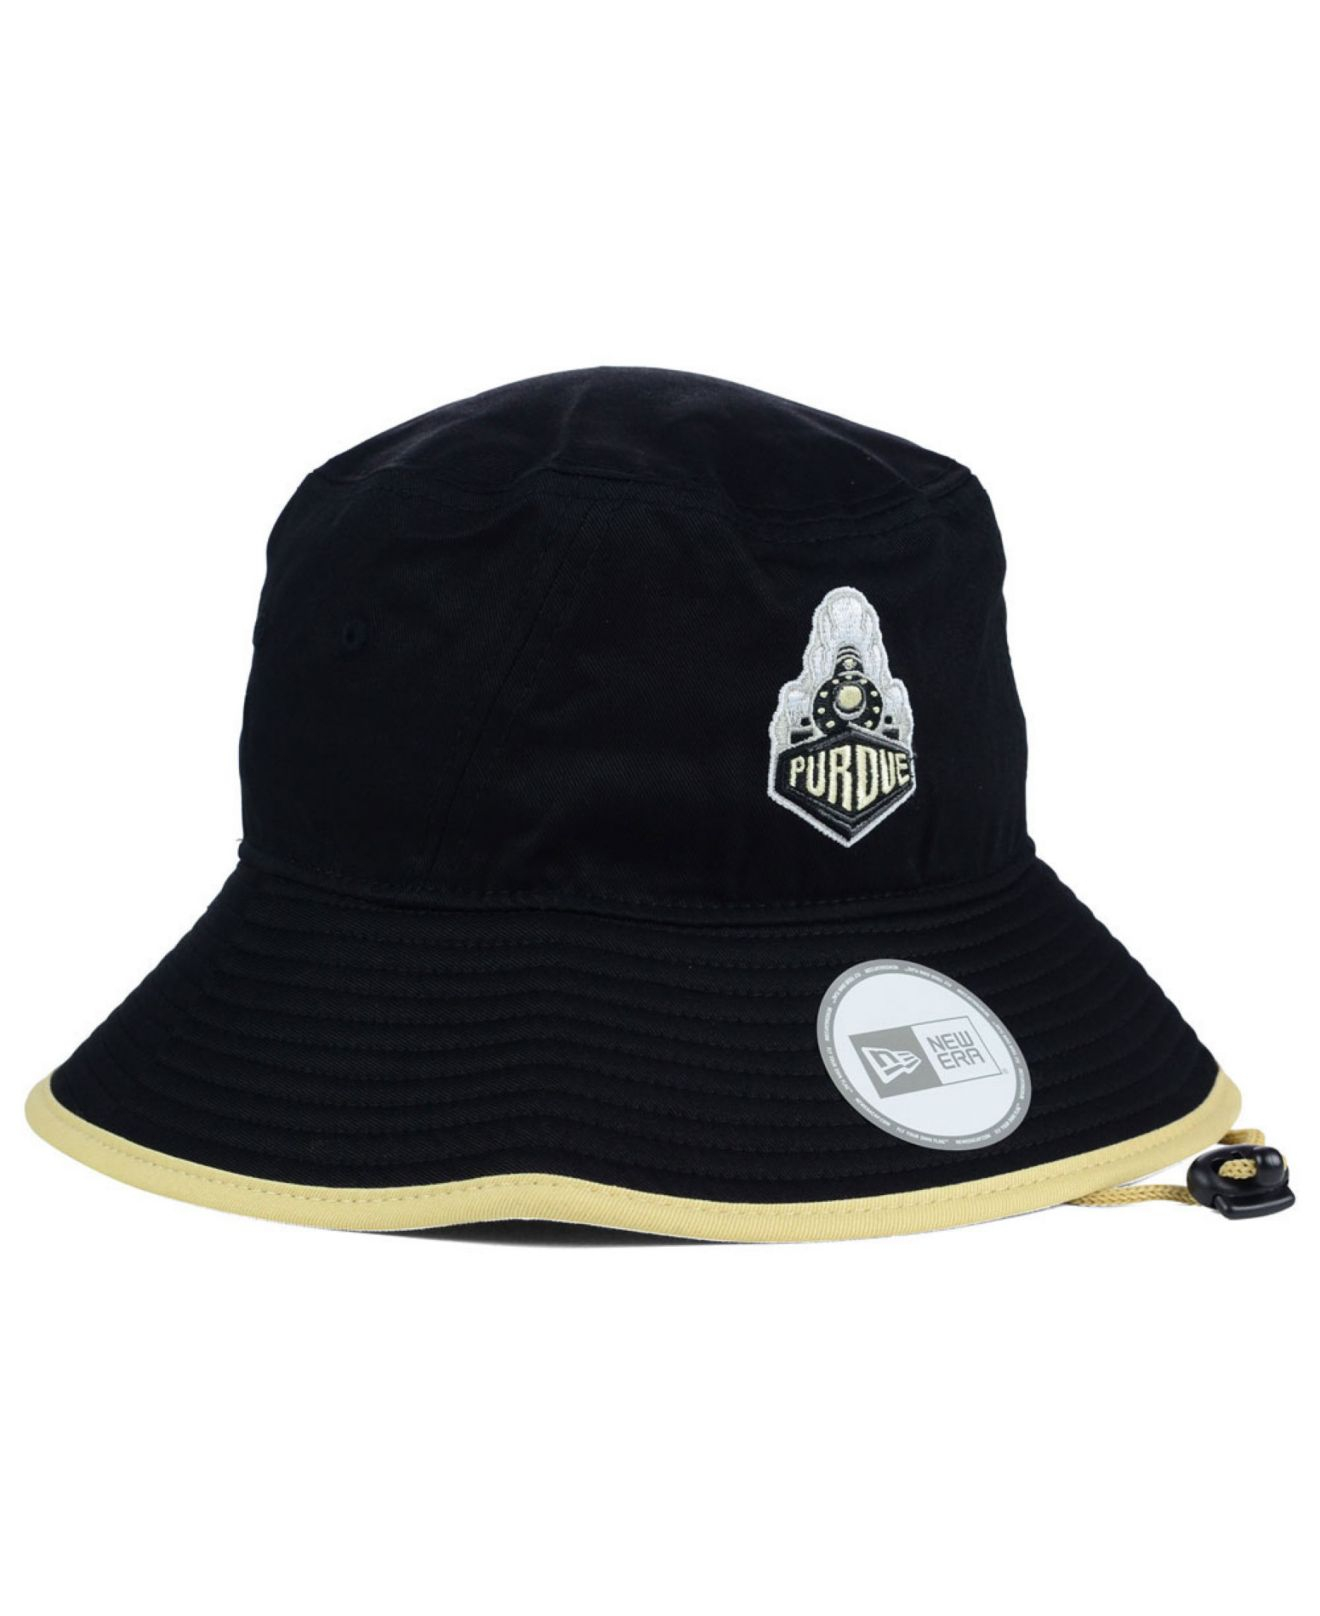 ... norway lyst ktz purdue boilermakers tip bucket hat in black for men  cd036 cd445 d152bec3482f